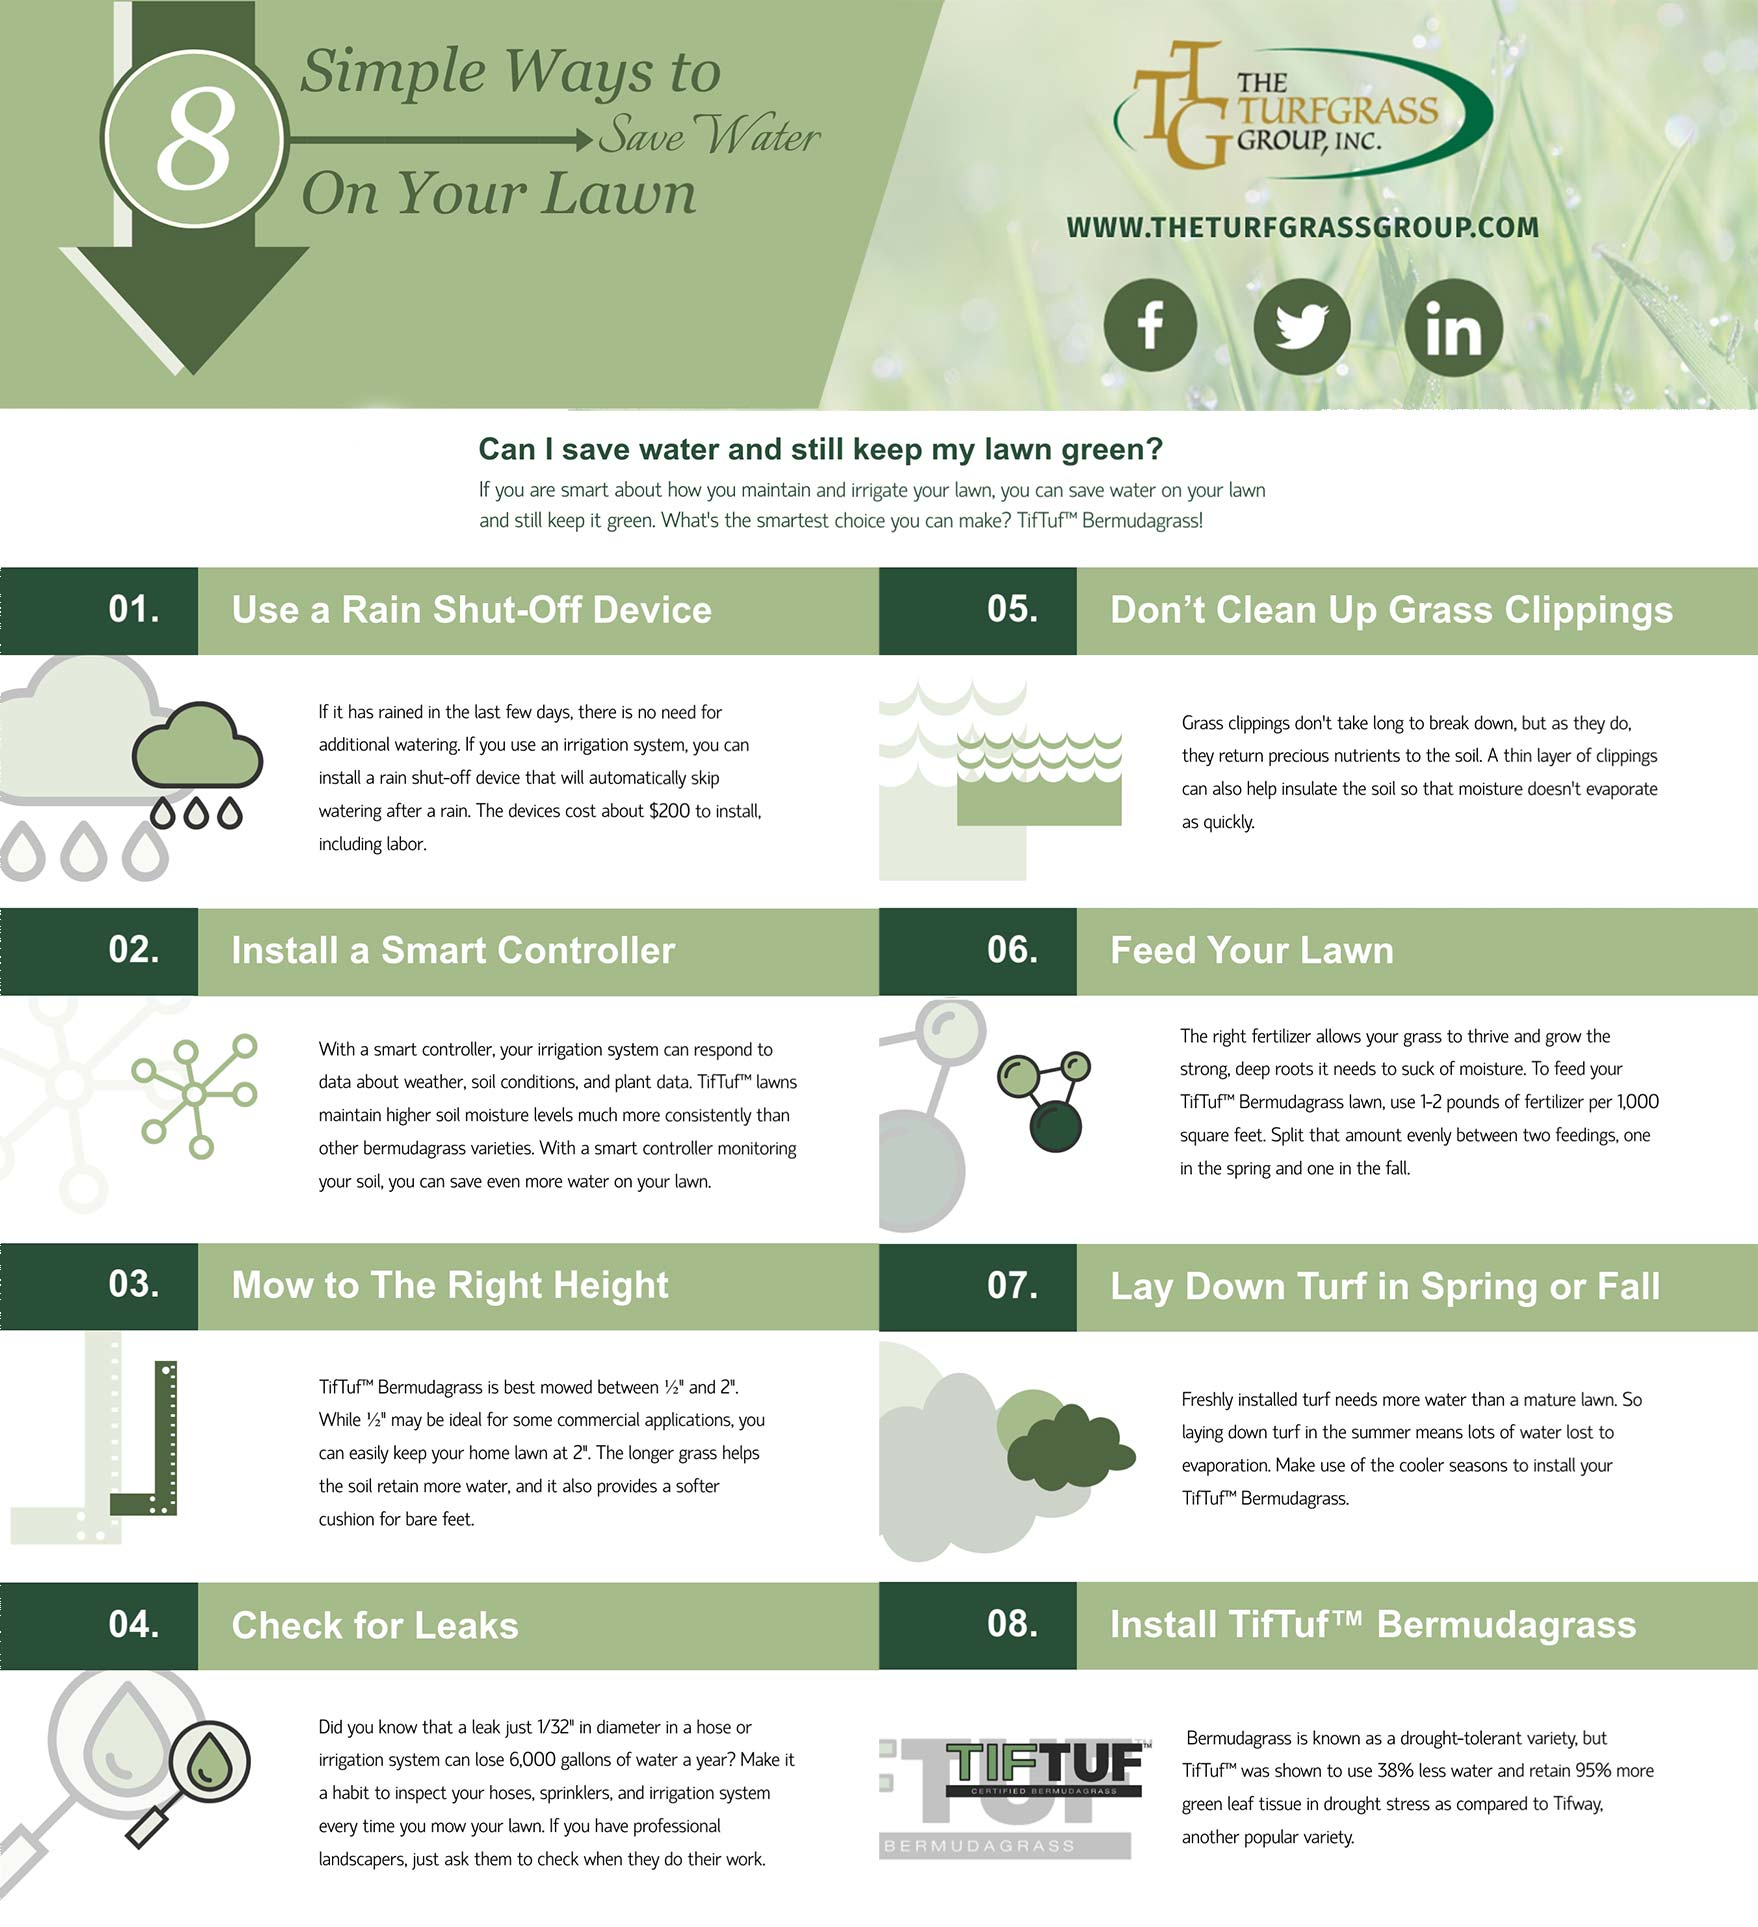 8 Simple Ways to Save Water on Your Lawn [infographic]